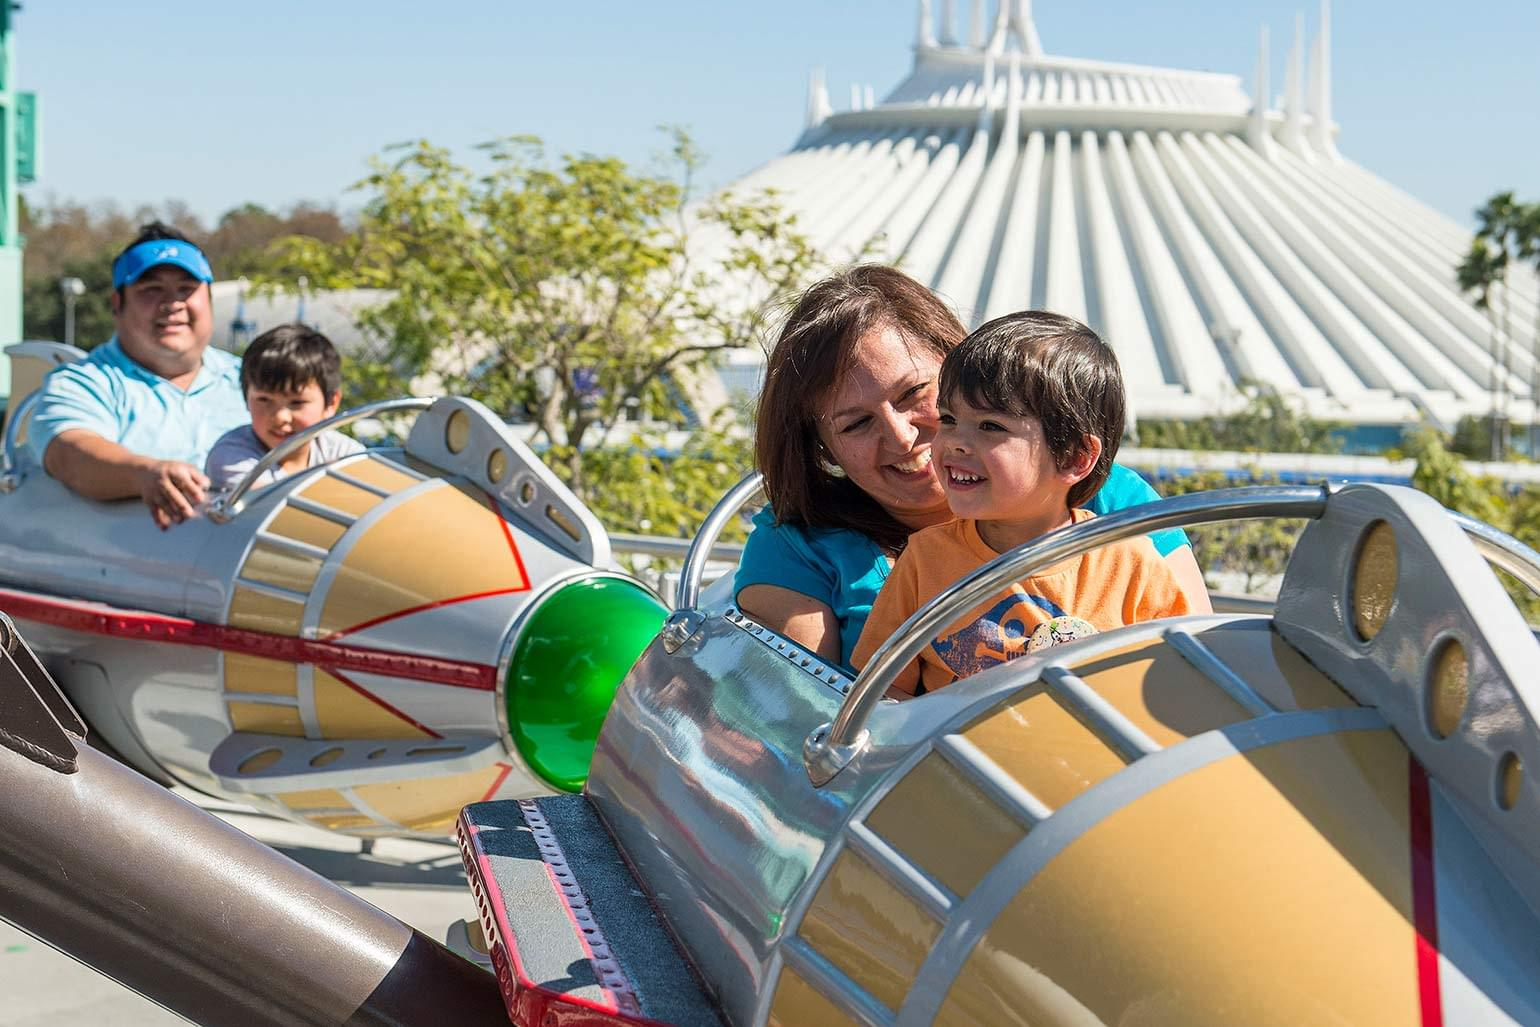 Smiling family enjoys the Astro Orbitor ride in Tomorrowland.